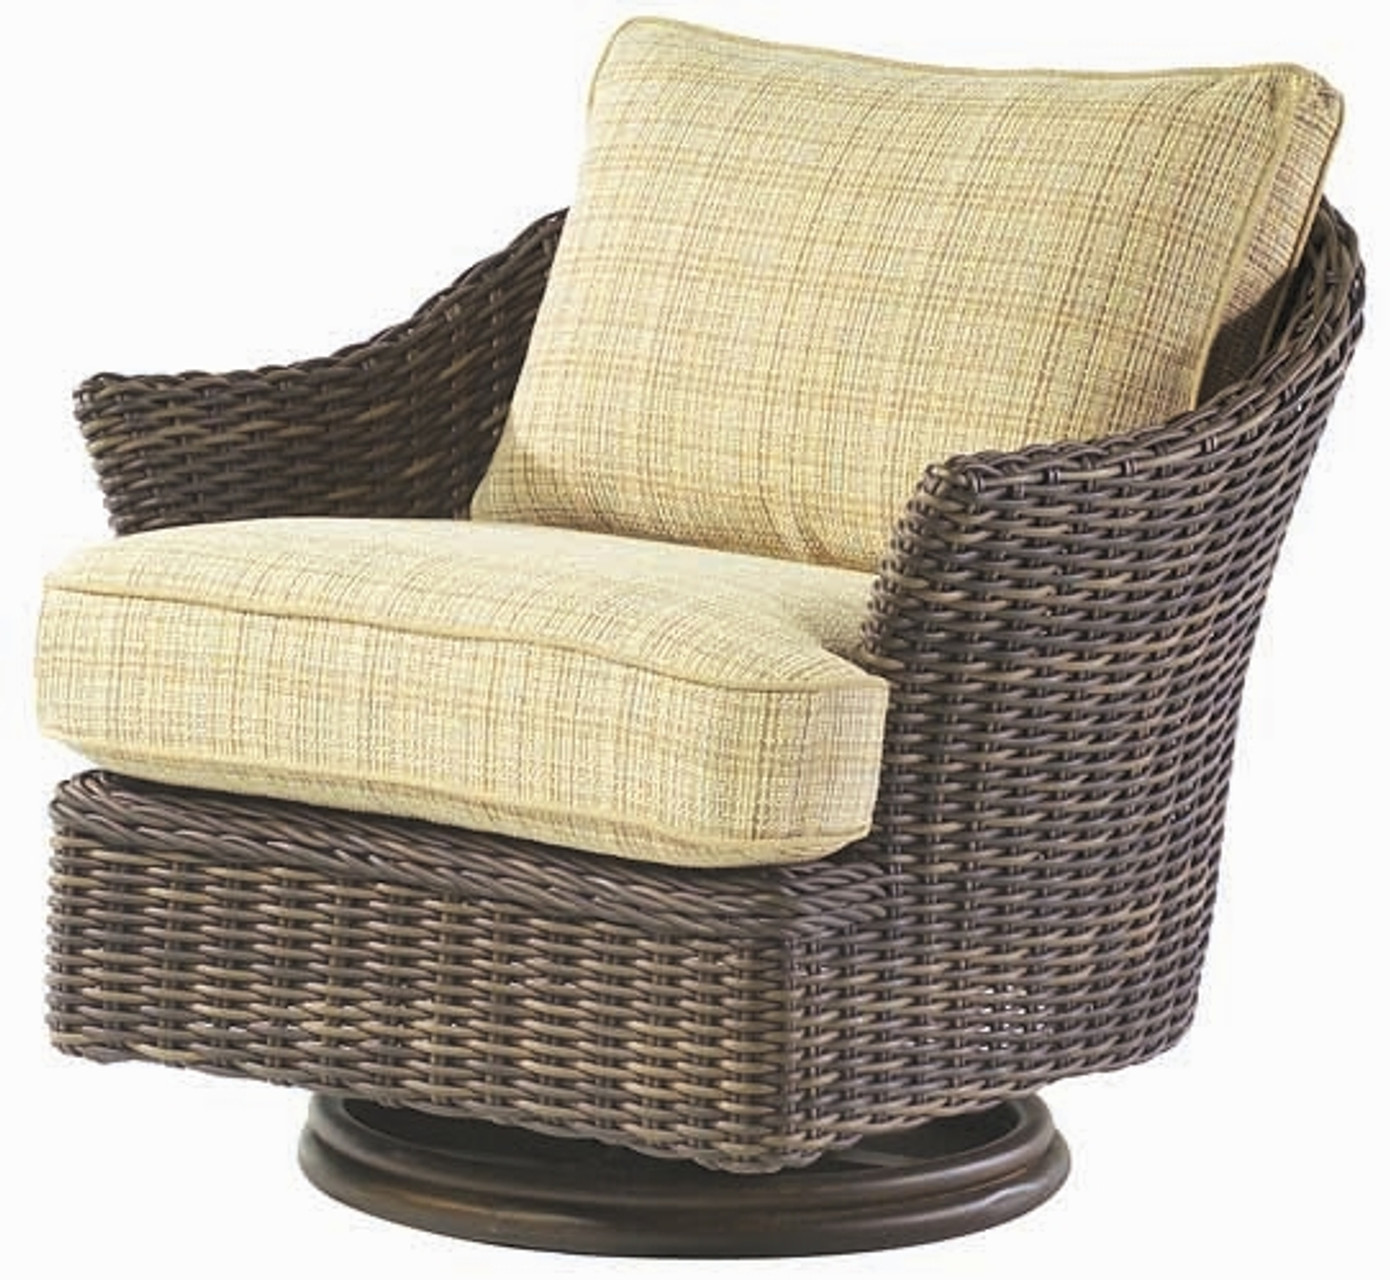 Tremendous Woodard Sonoma Outdoor Swivel Lounge Chair Gmtry Best Dining Table And Chair Ideas Images Gmtryco